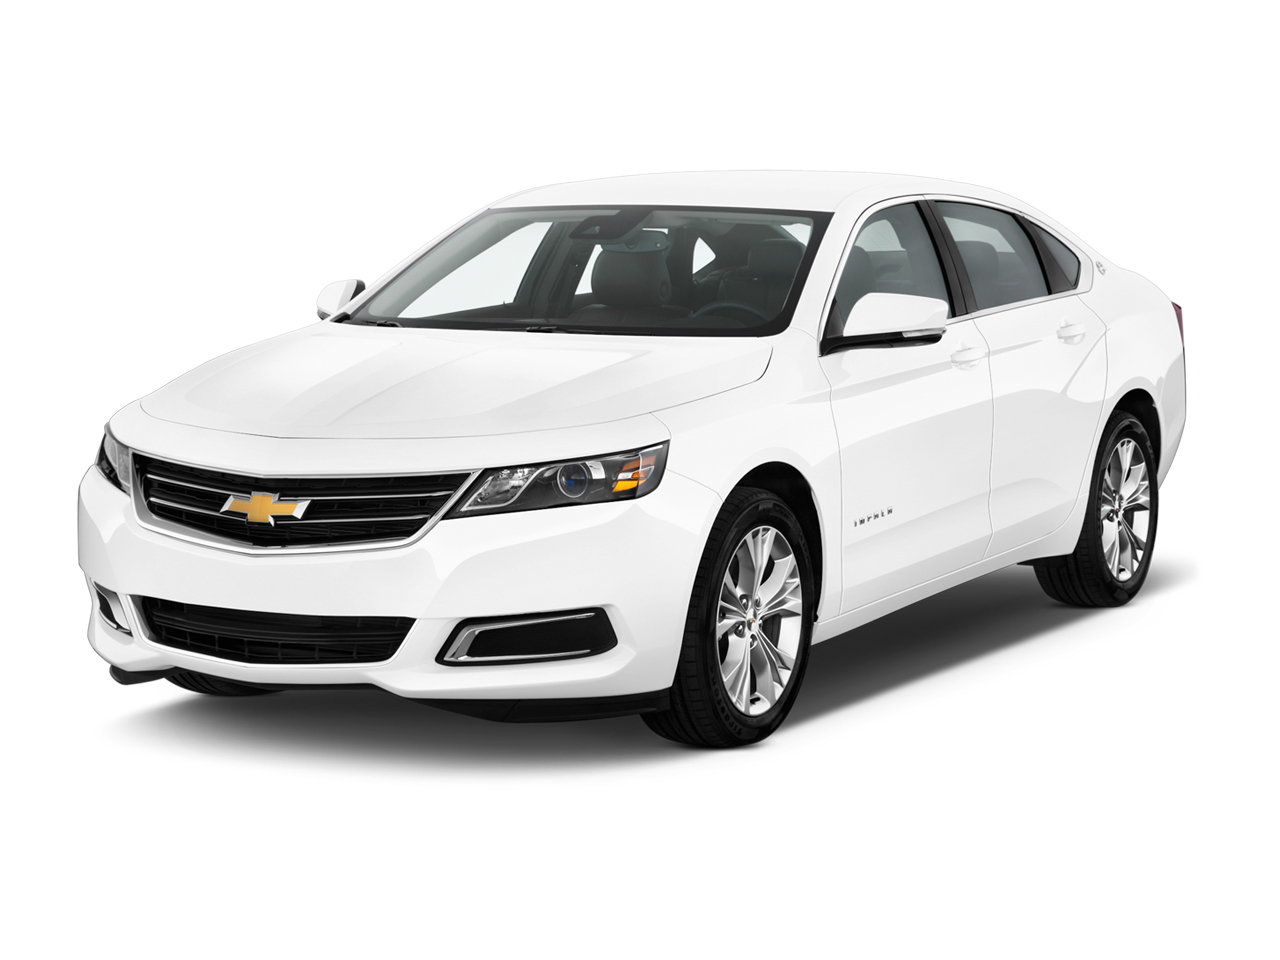 2015 chevrolet impala ss specs and price car interior design. Black Bedroom Furniture Sets. Home Design Ideas